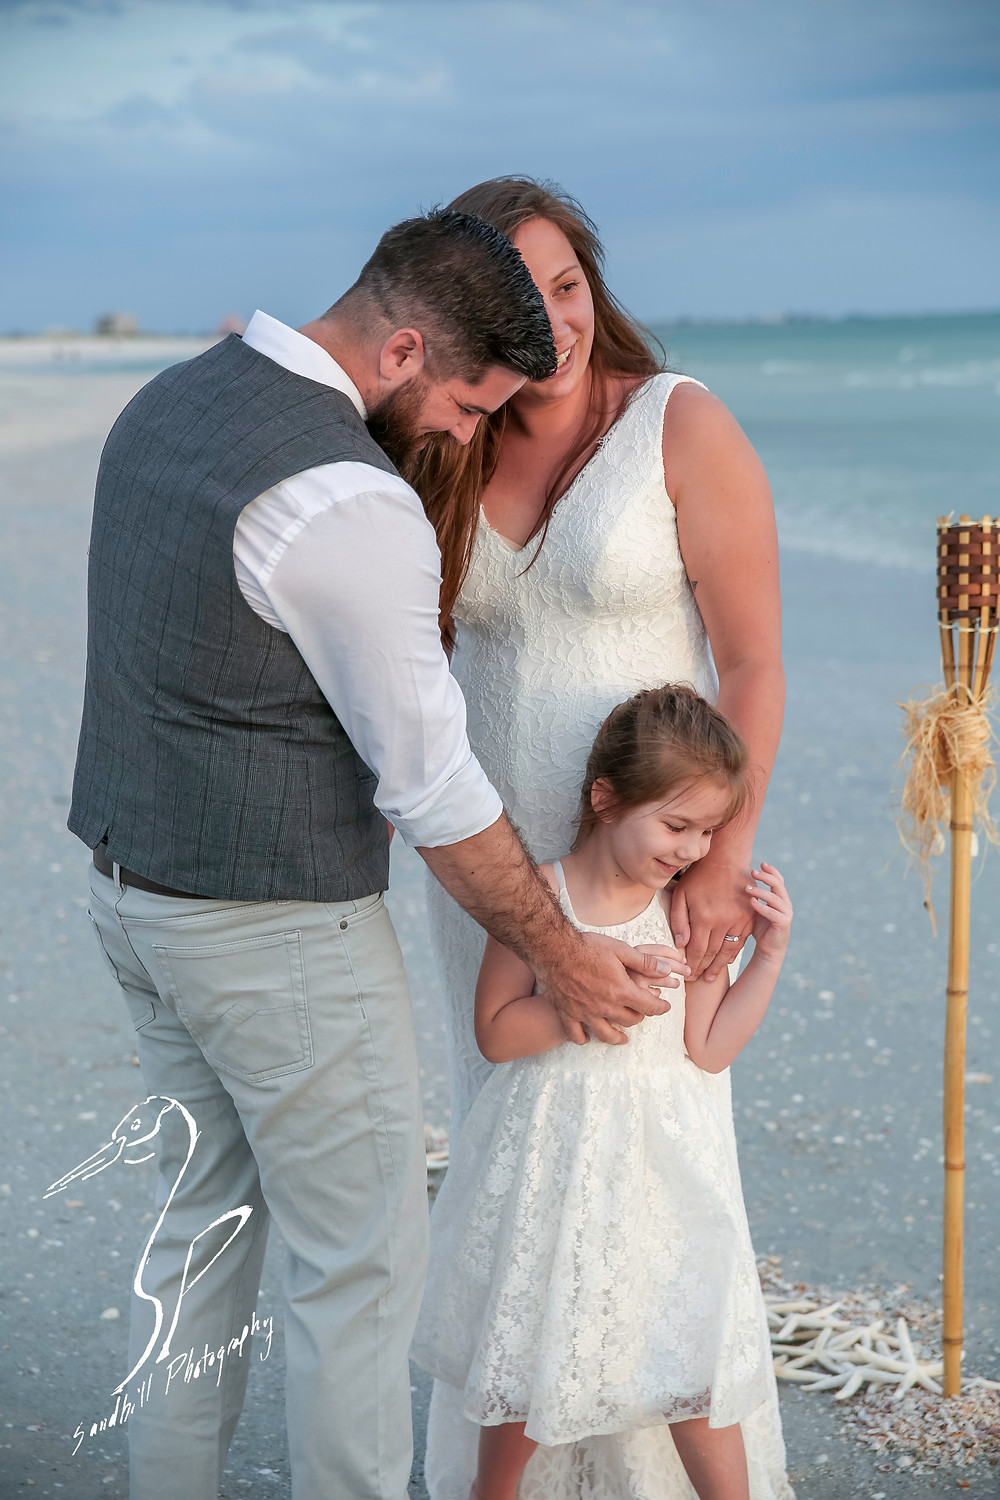 Treasure Island Wedding, ceremony on the beach, bride and groom are holding their daughter's hands